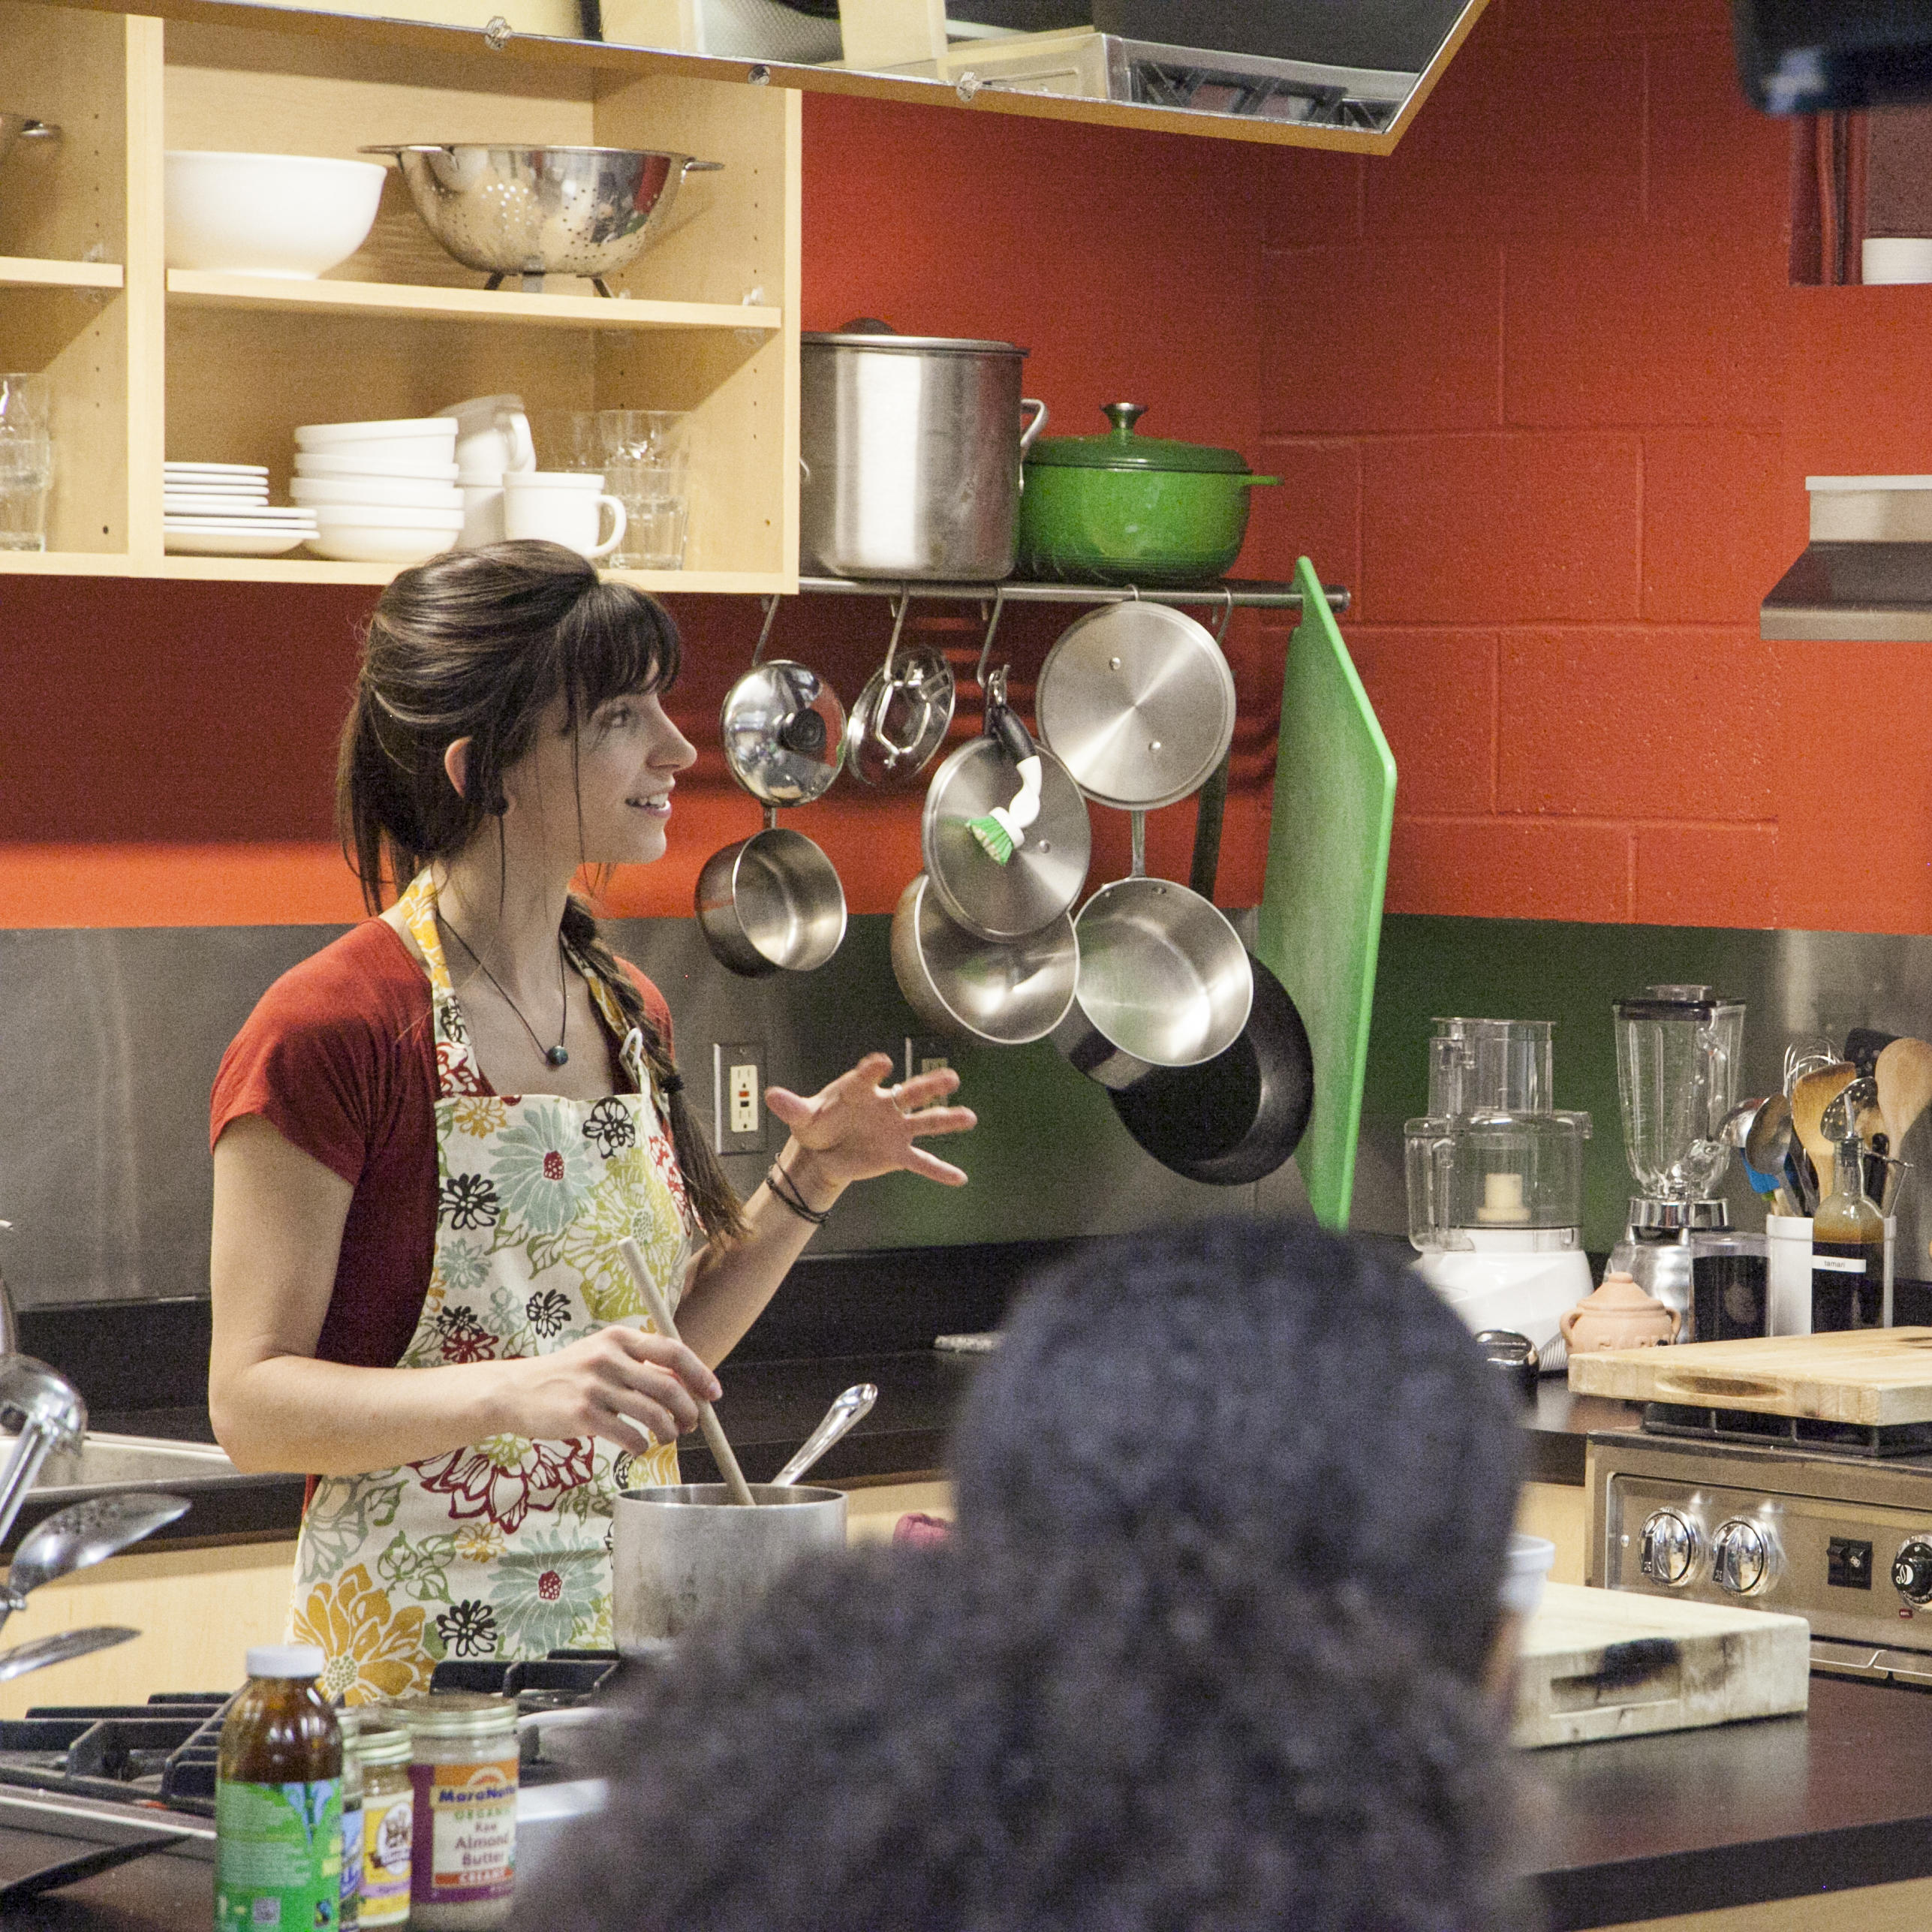 Student in kitchen giving demonstration